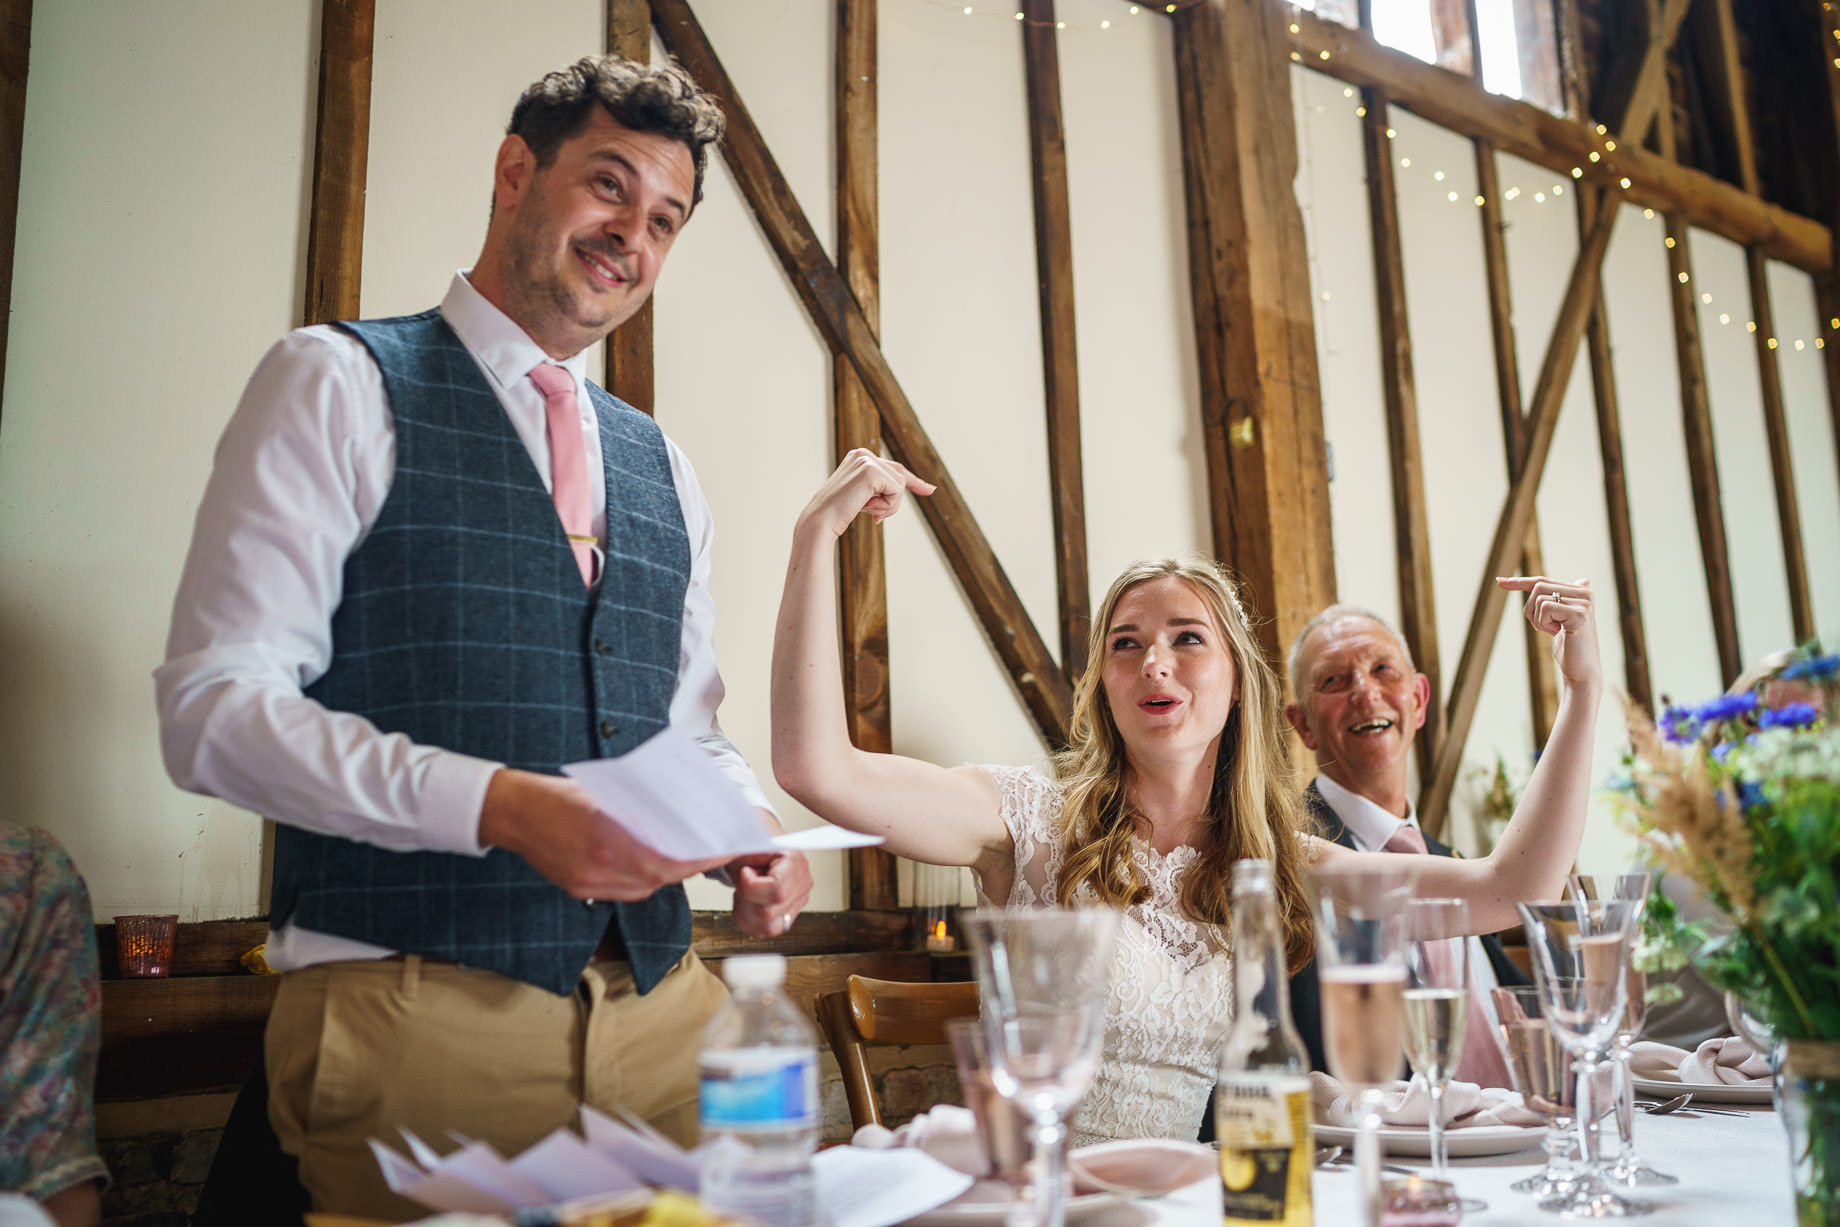 Bonhams Barn wedding photography - Ellen + Adam